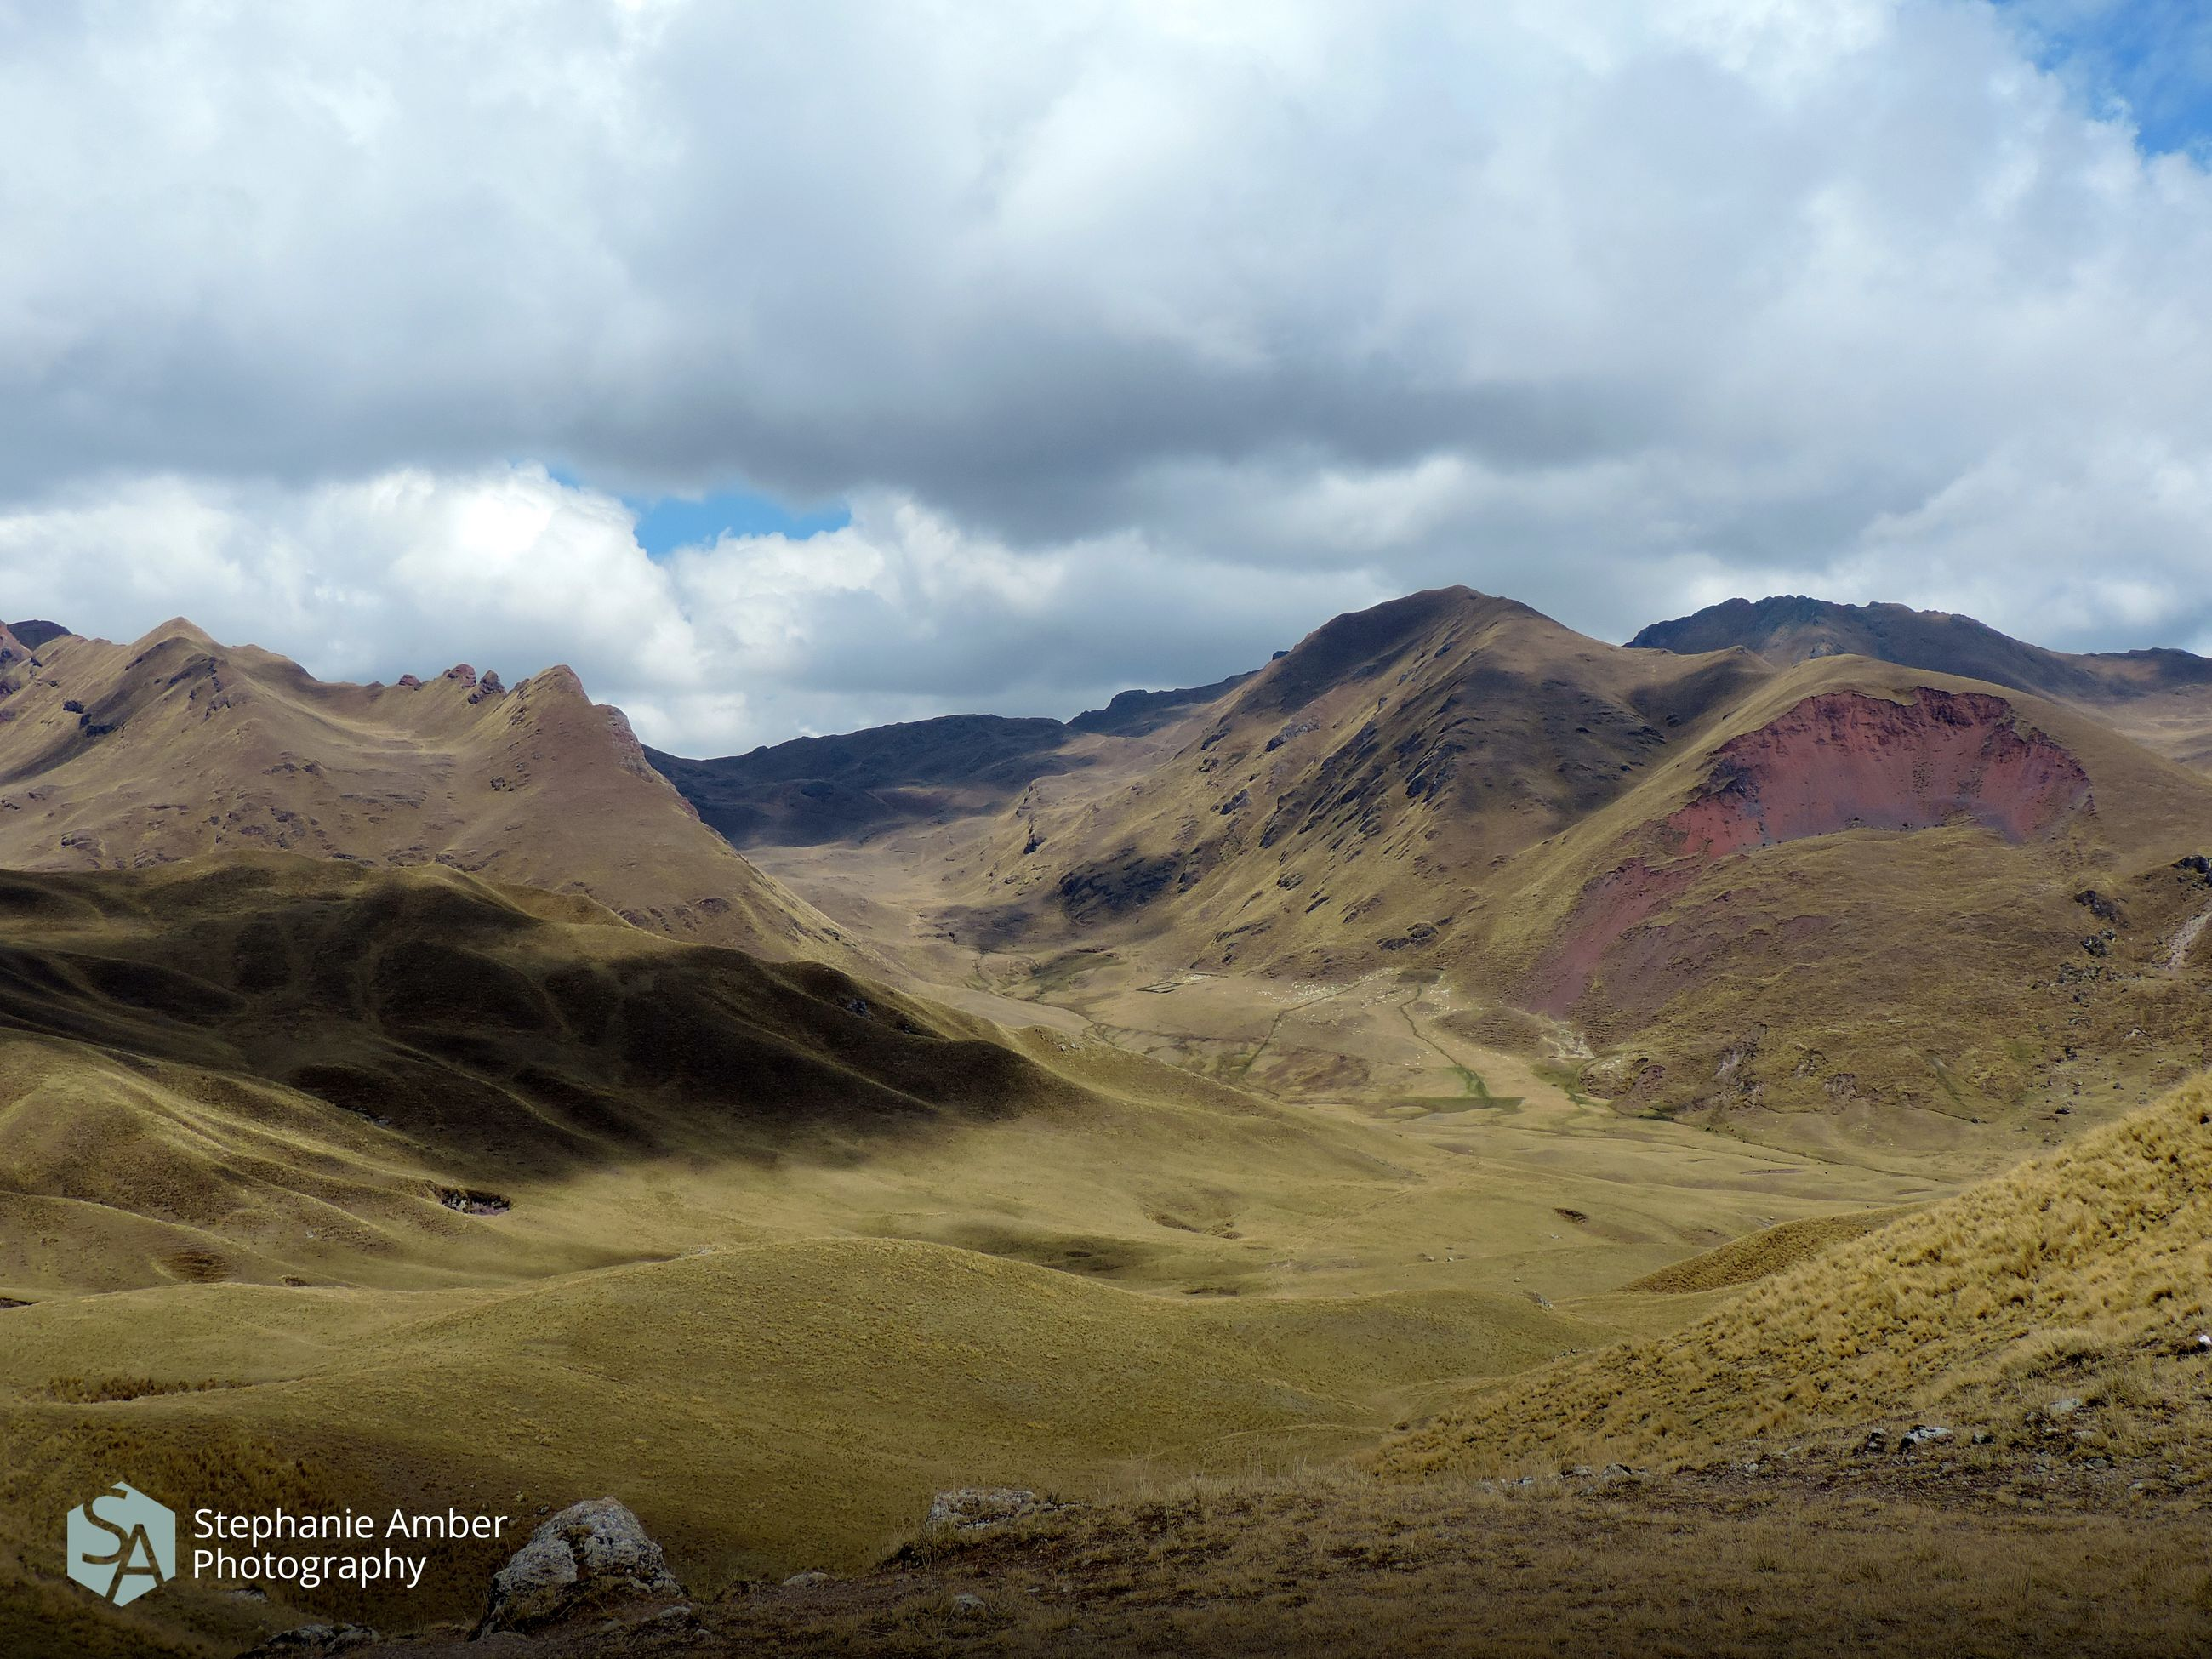 cloud - sky, sky, mountain, scenics - nature, beauty in nature, landscape, tranquil scene, environment, tranquility, non-urban scene, mountain range, day, nature, land, remote, no people, idyllic, outdoors, overcast, physical geography, arid climate, climate